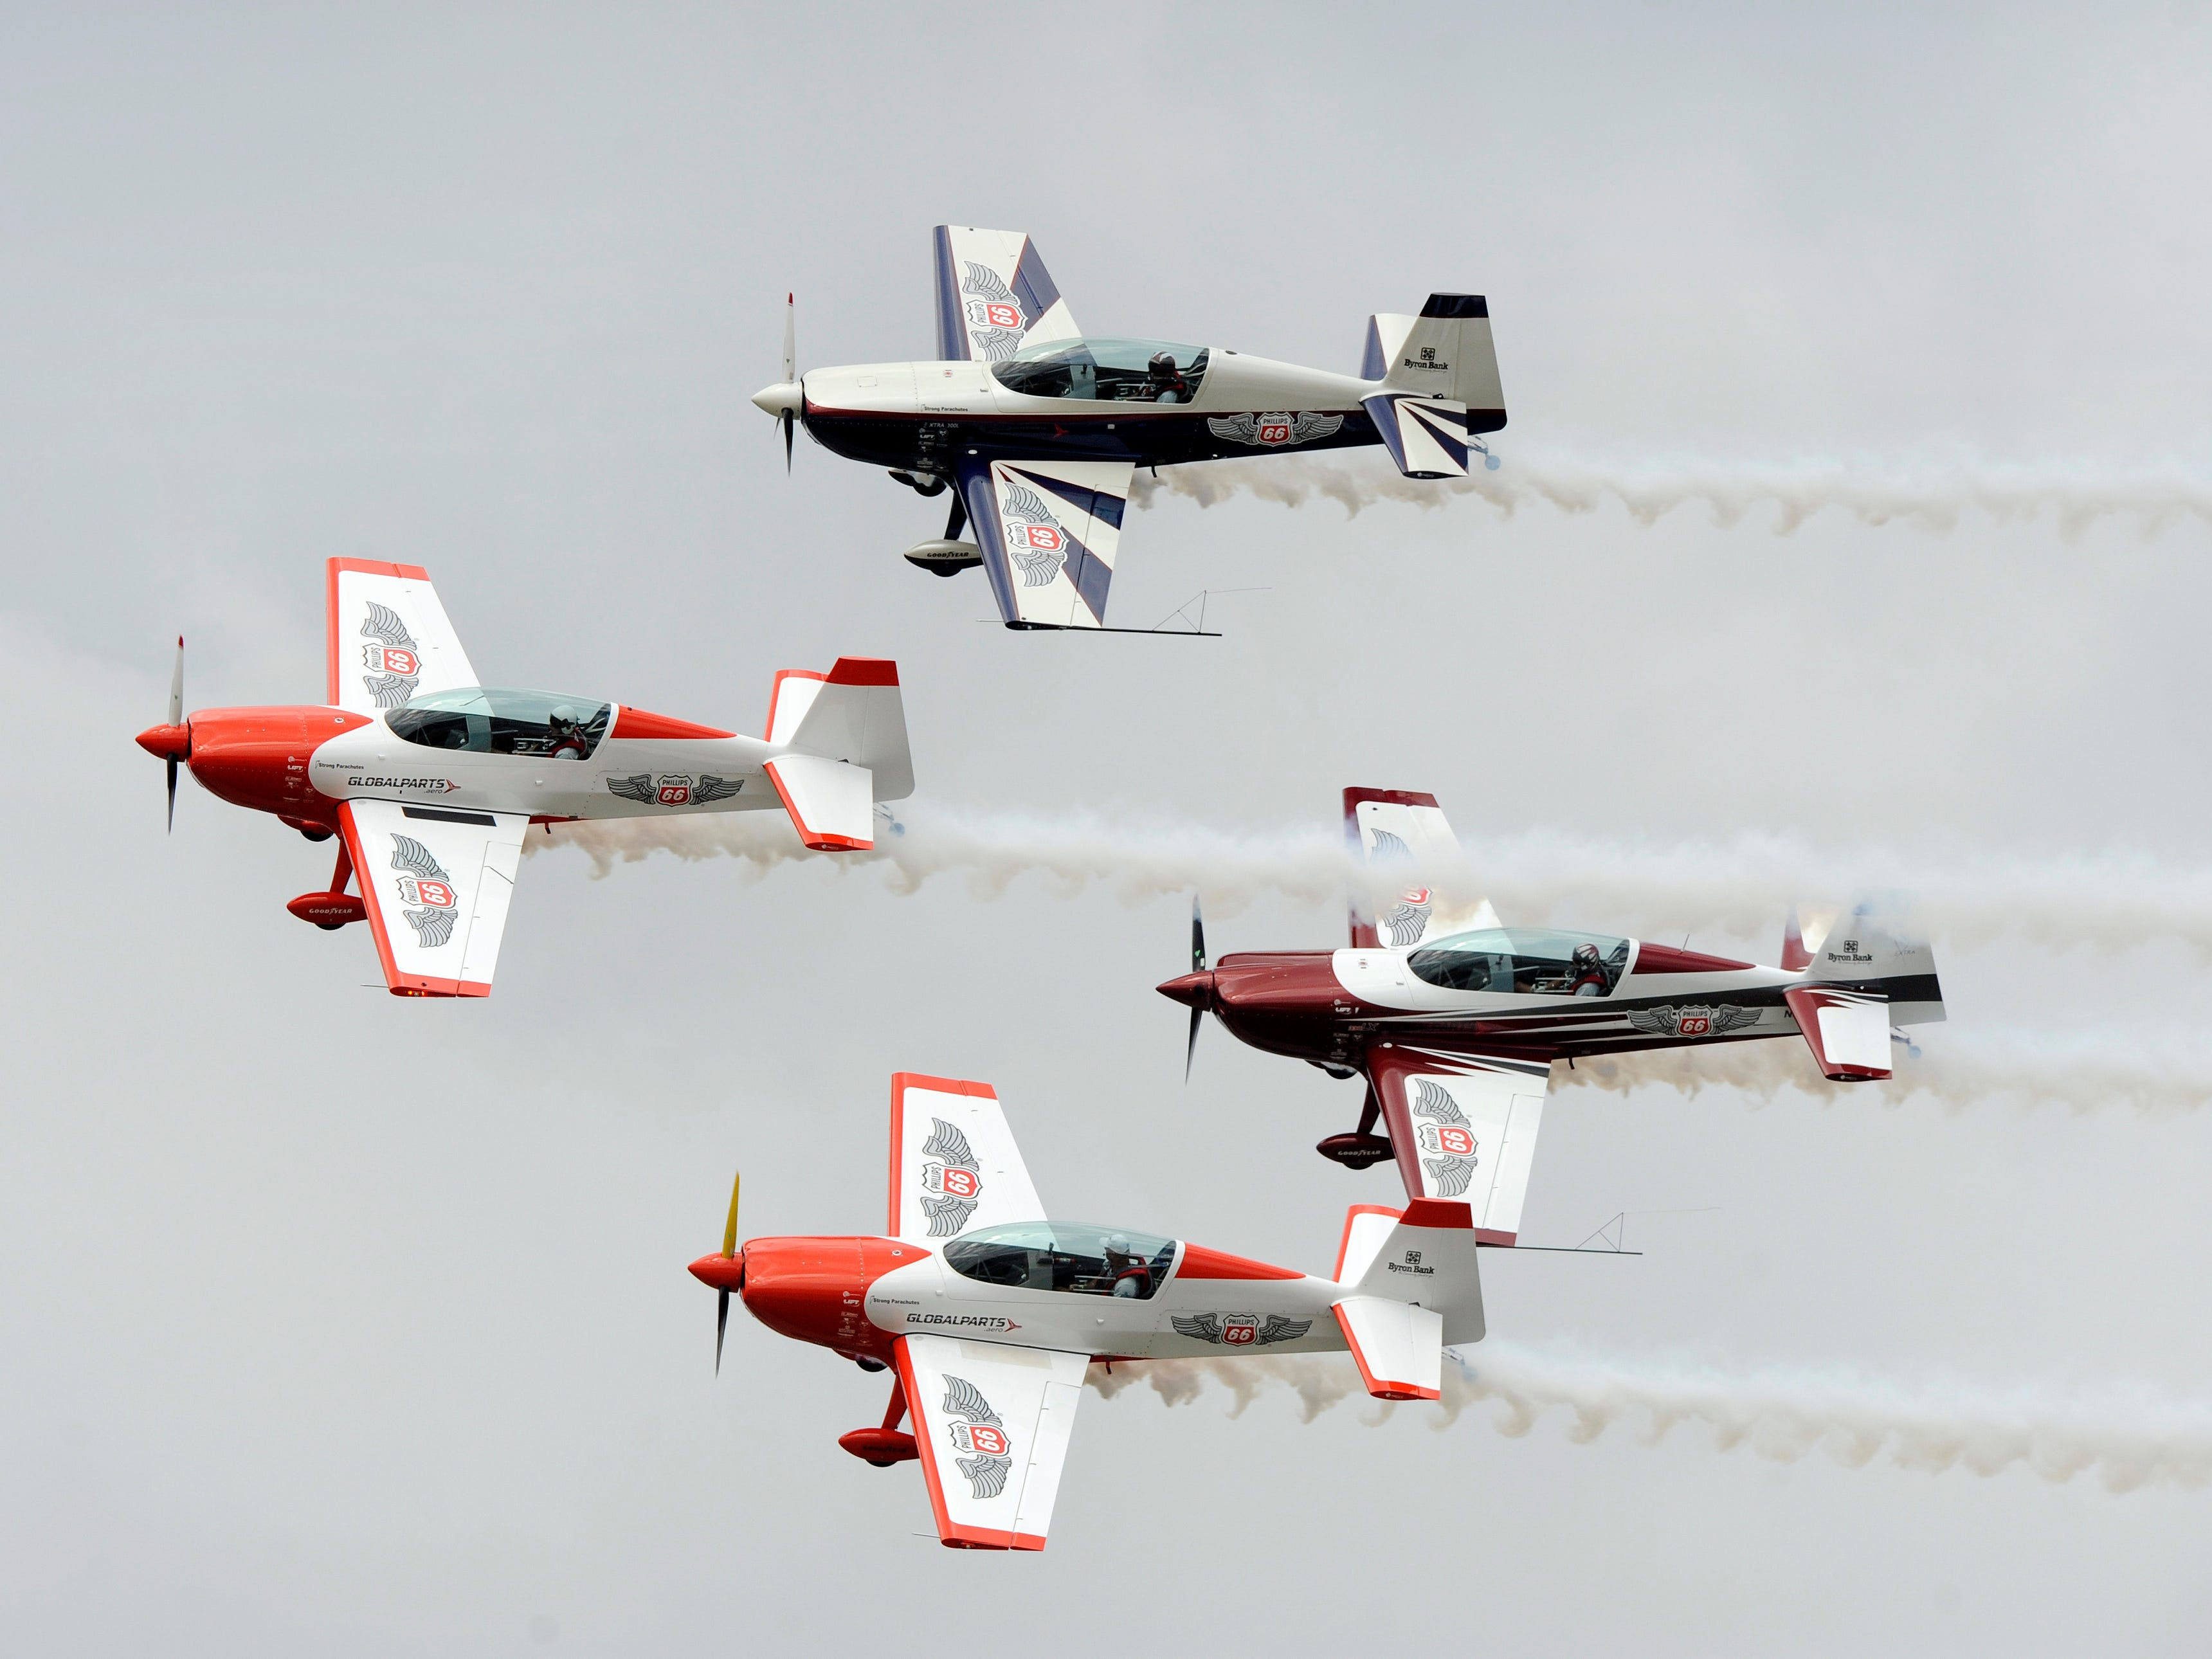 The Phillips 66 Aerostars fly in formation.